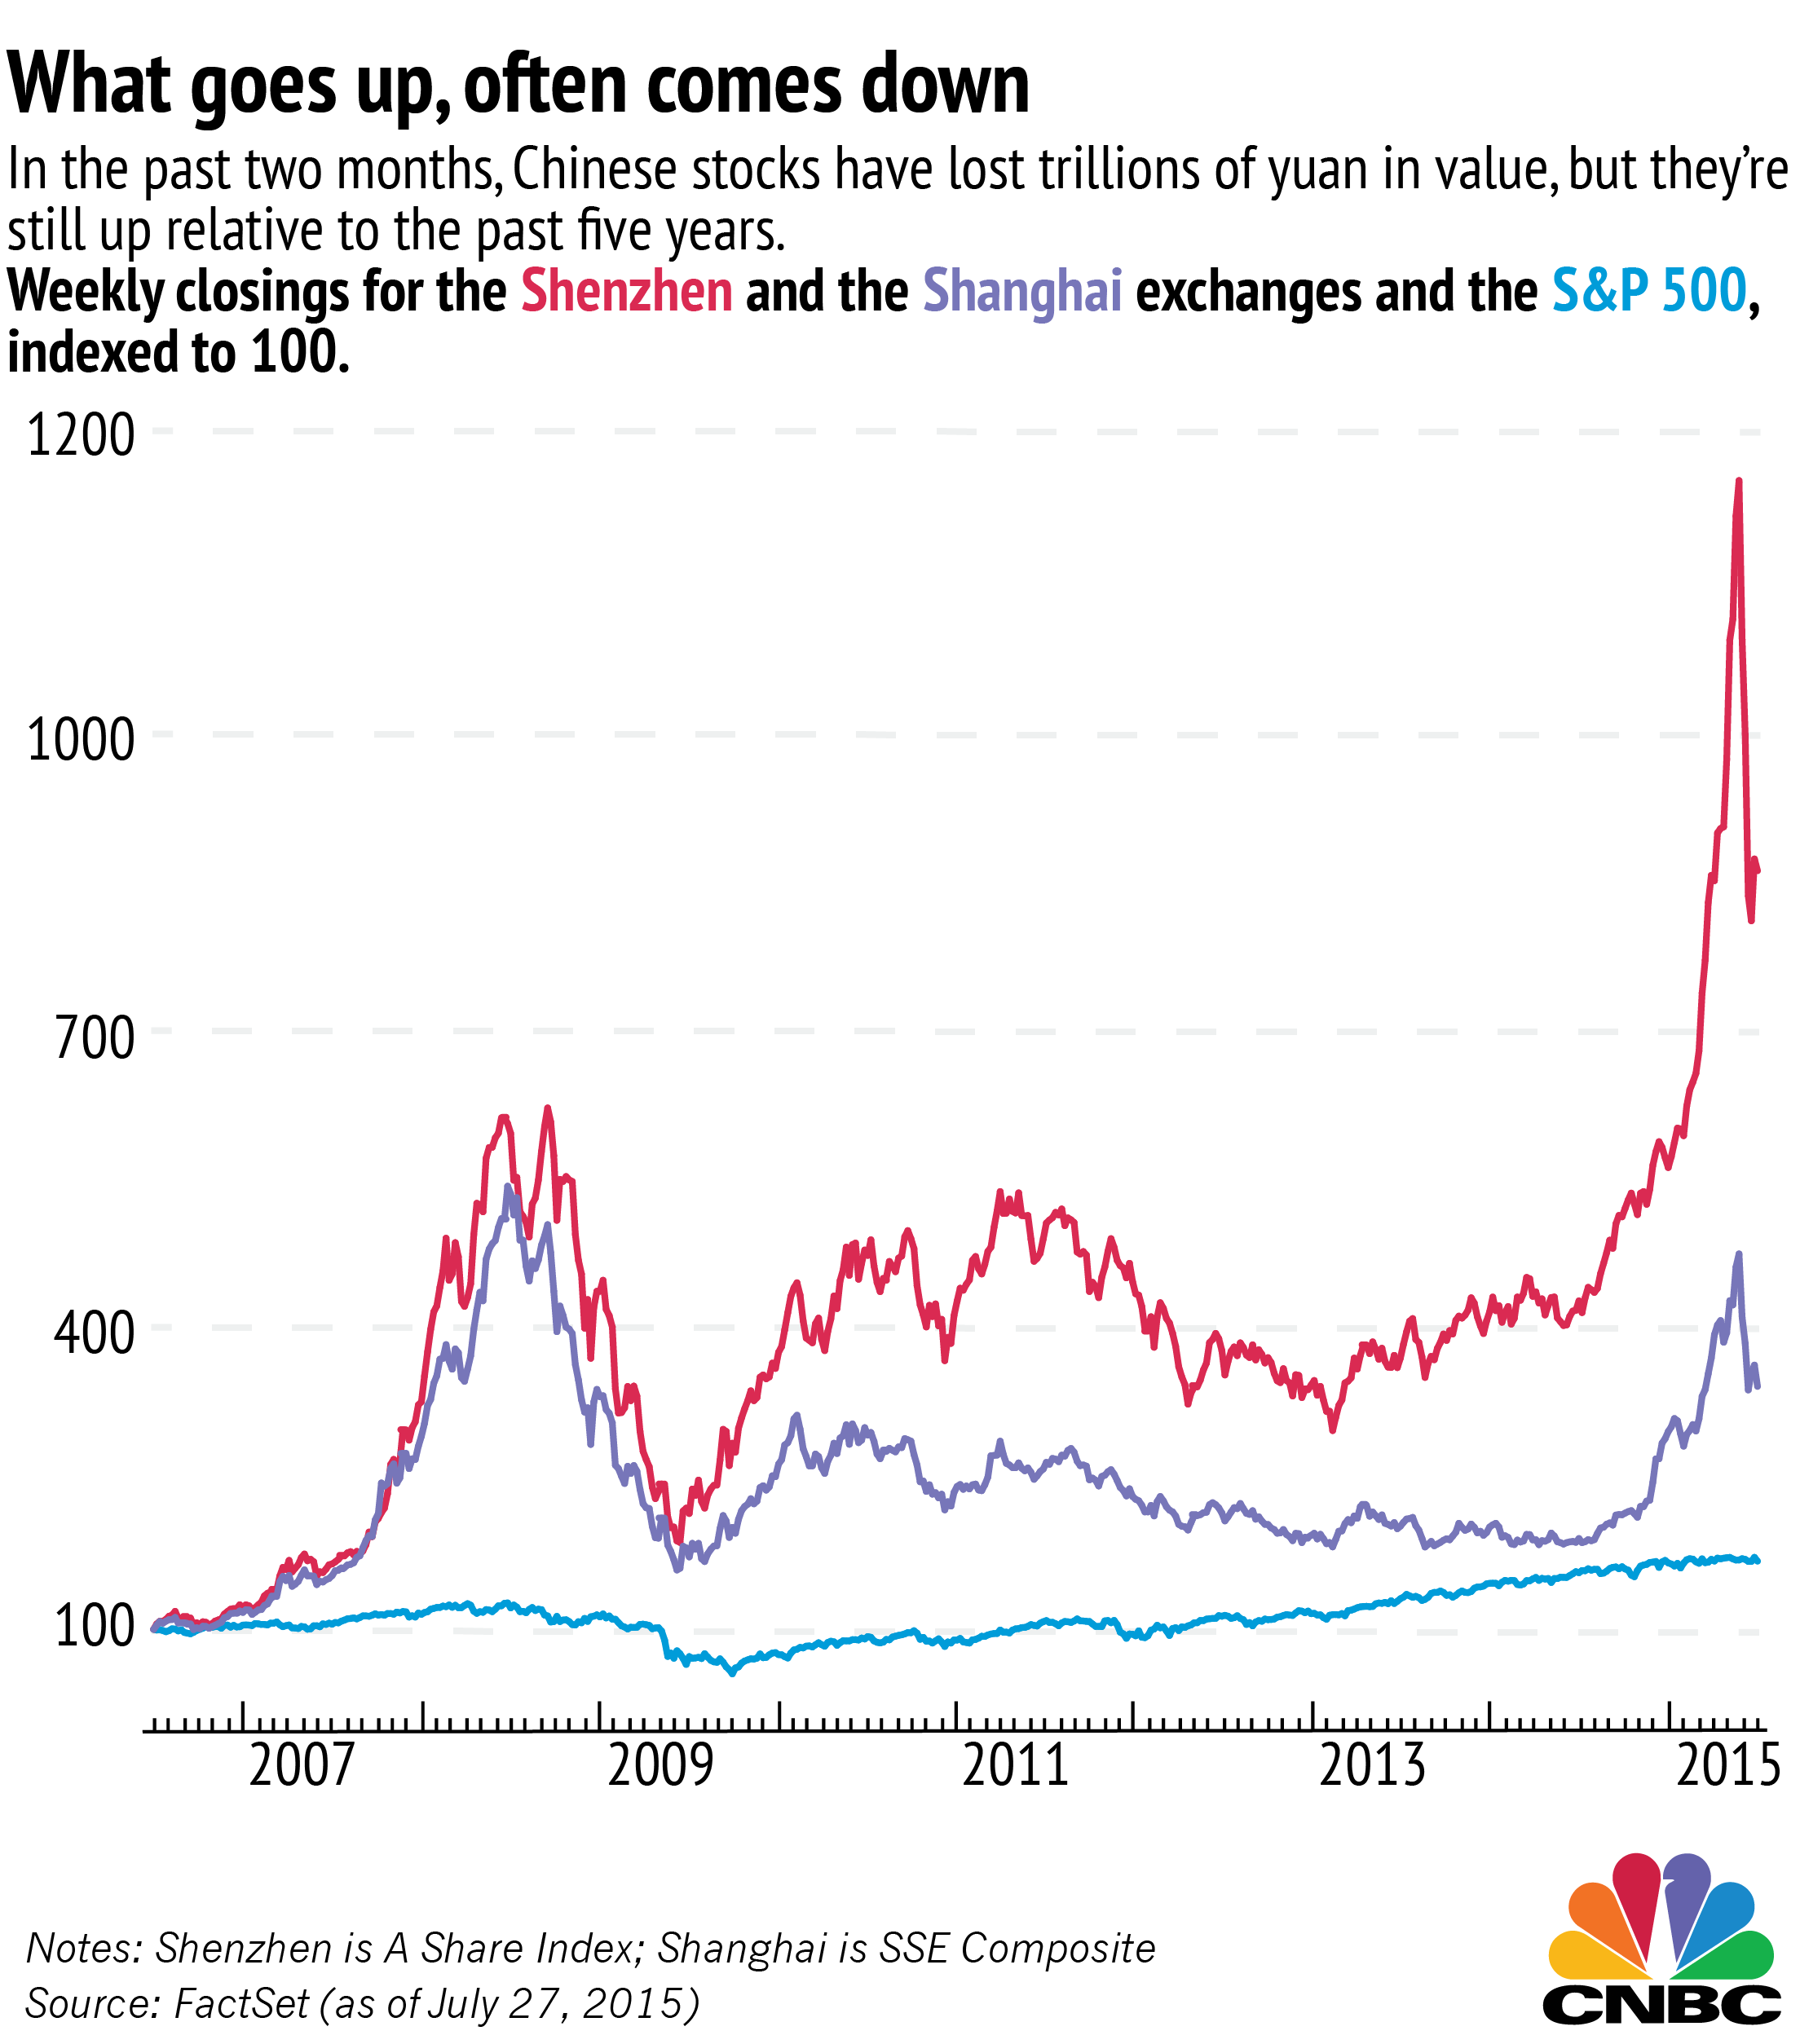 Charts explaining the chinese stock market